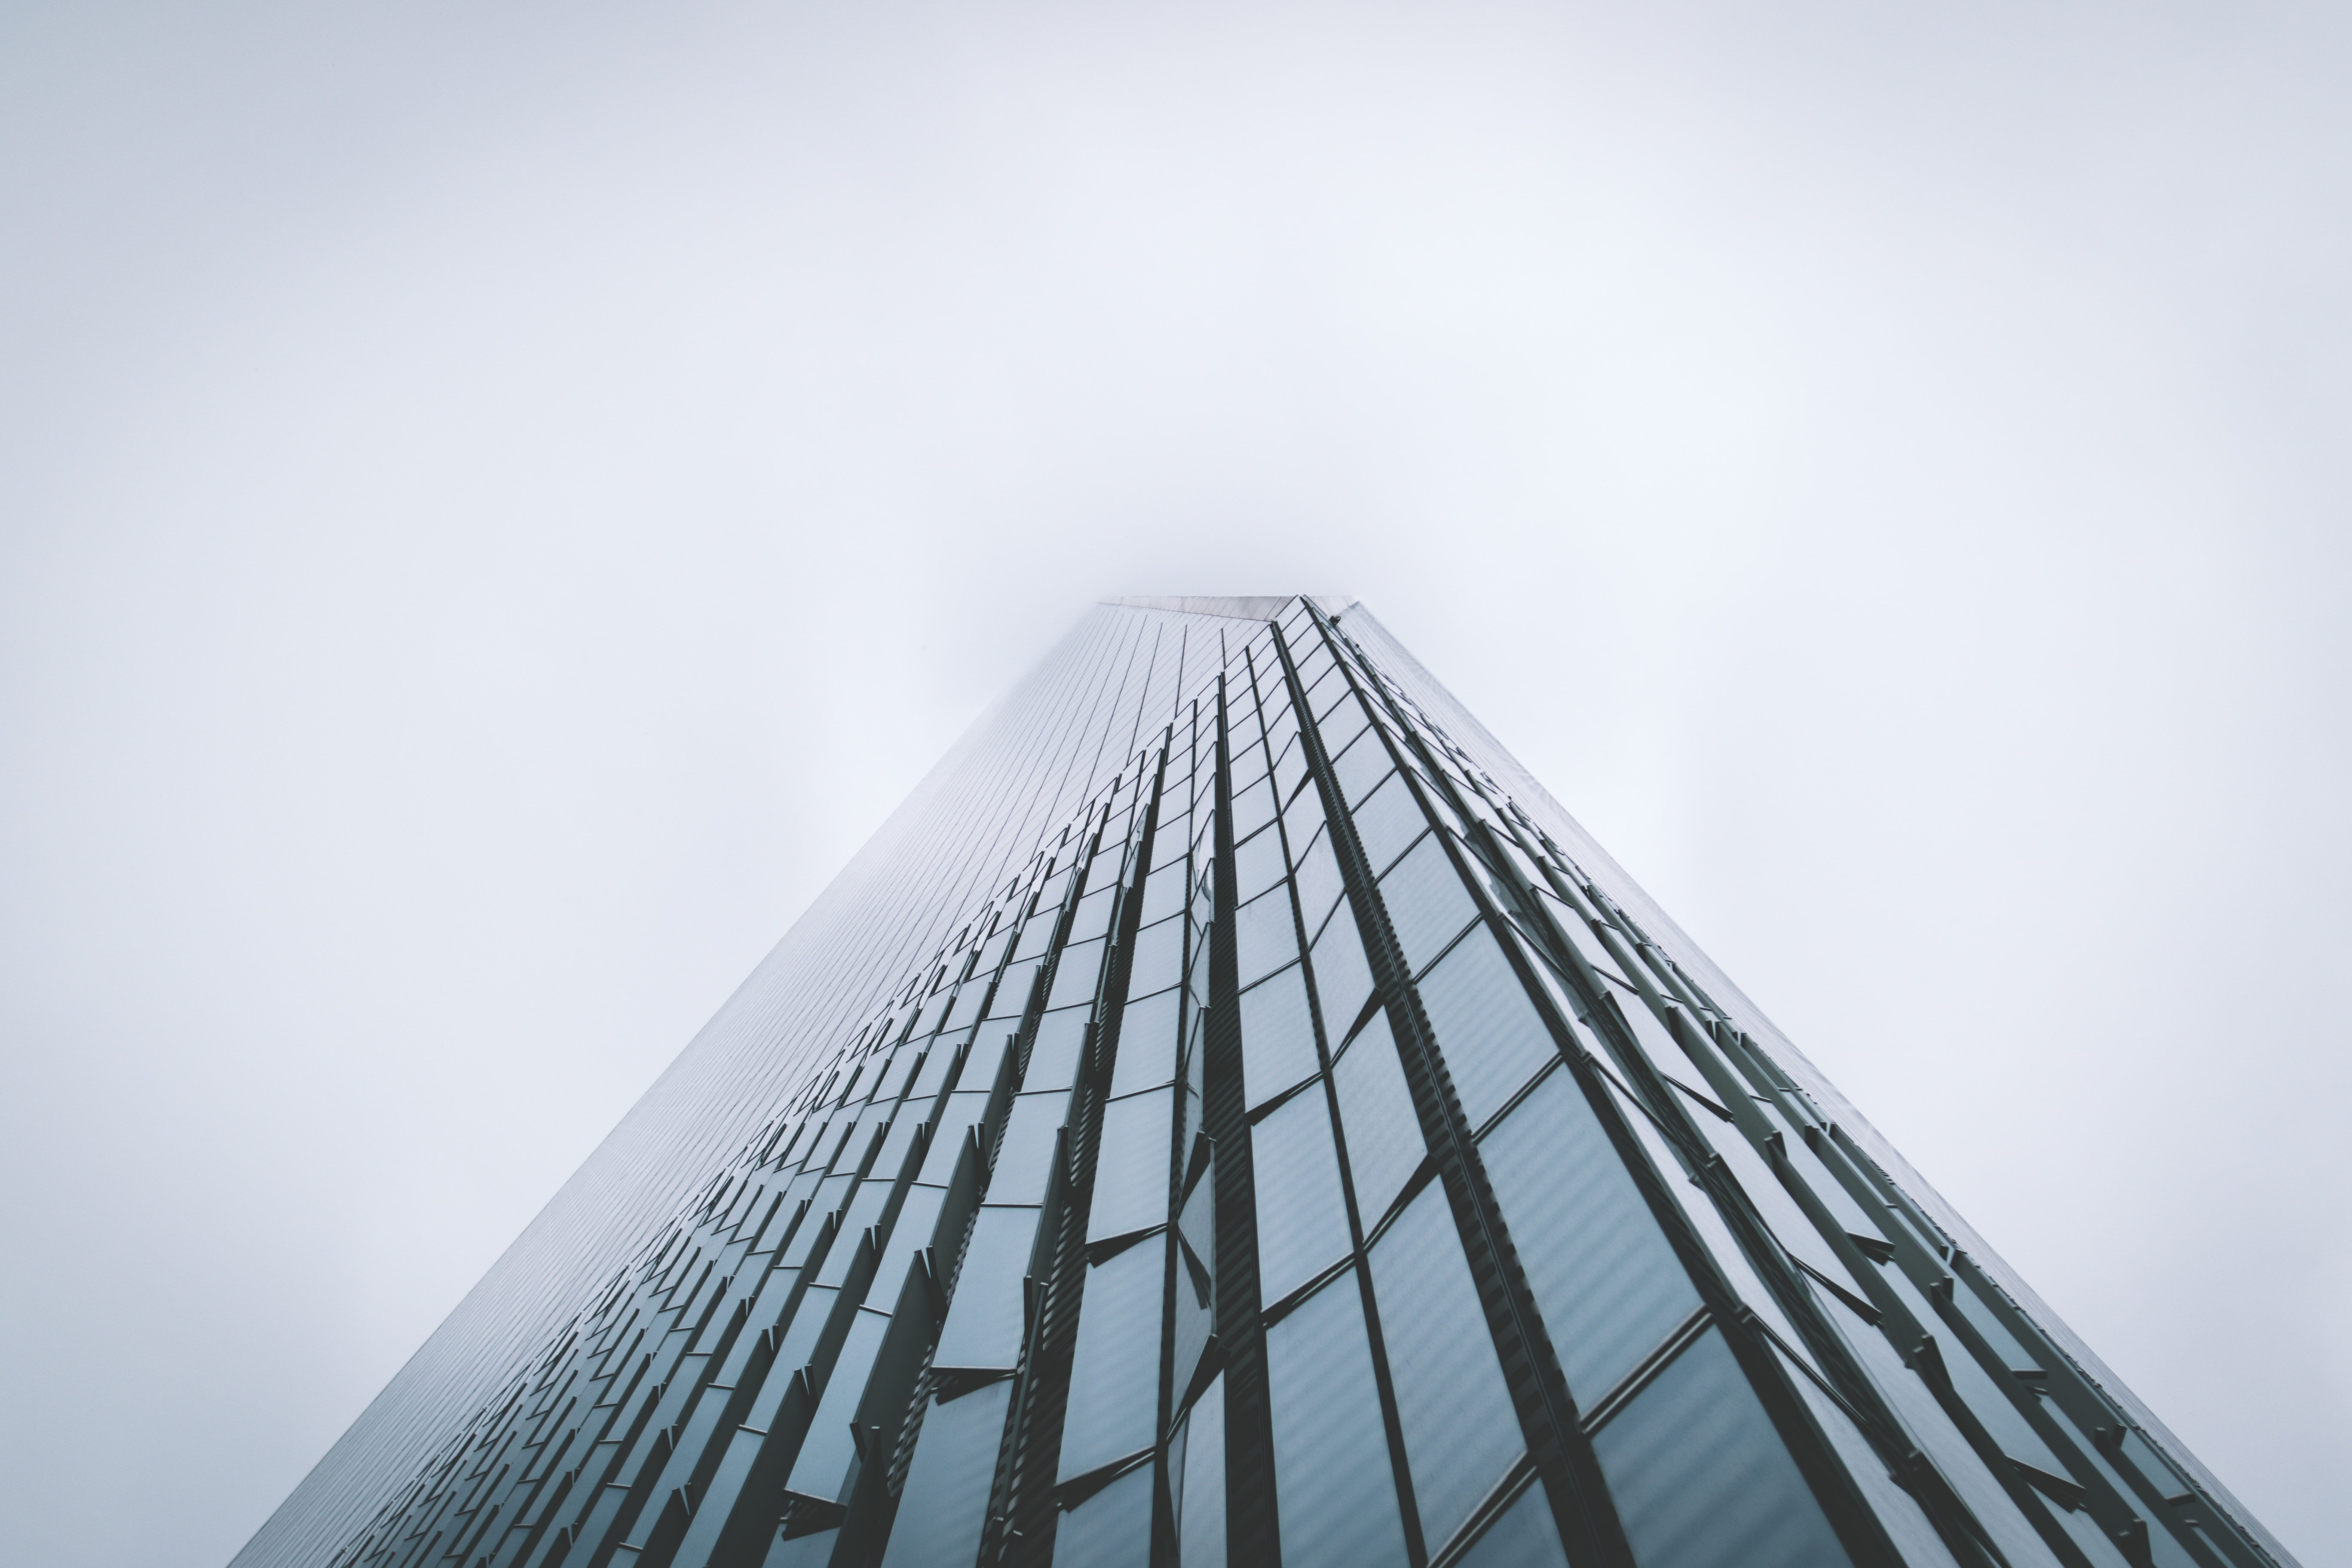 The towering facade of One World Trade Center building shrouded in fog